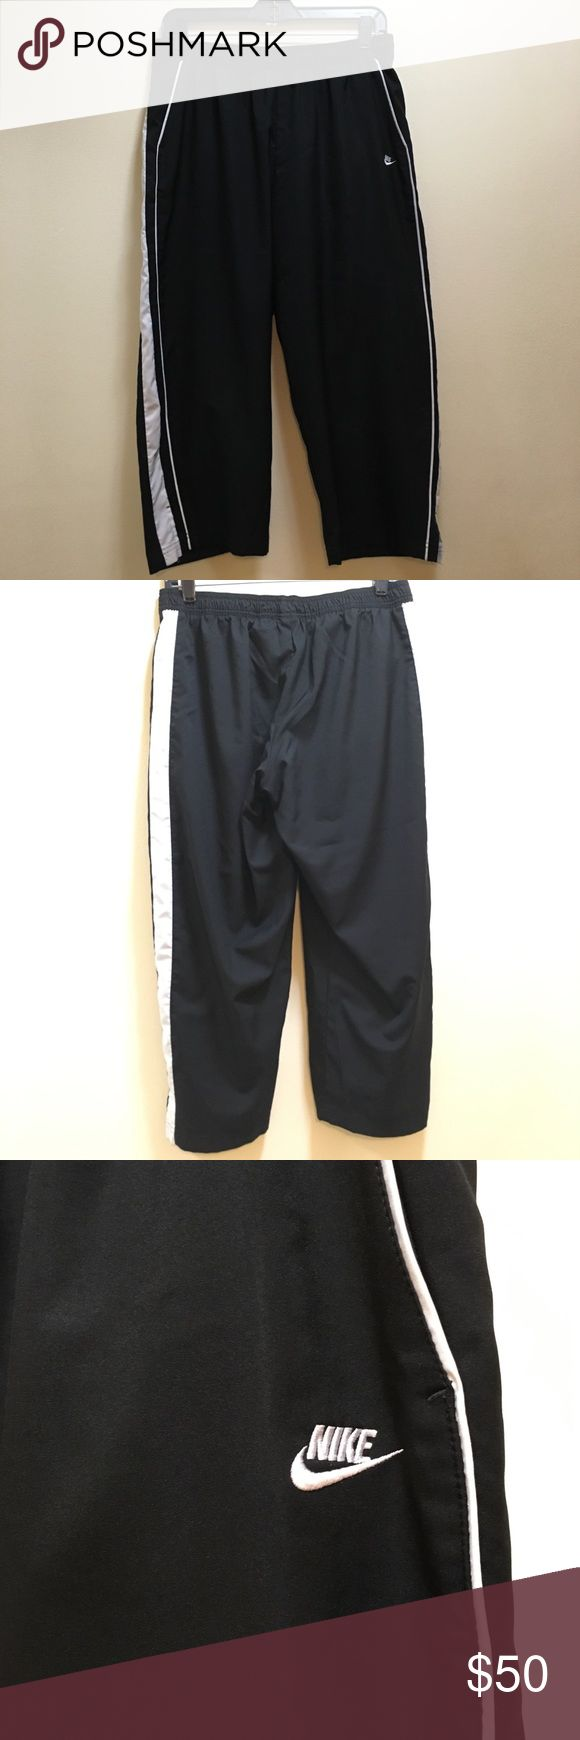 "Sz Large Nike Women's Cropped Active Pants Very very gently worn, great condition.  Cropped at 22.5"" inseam 10"" rise Slits at bottom  Front pockets  Super soft polyester! These do not have a drawstring, just stretchy at top. (In case that makes a difference to you!) Black with white stripes on sides Nike Pants Track Pants & Joggers"